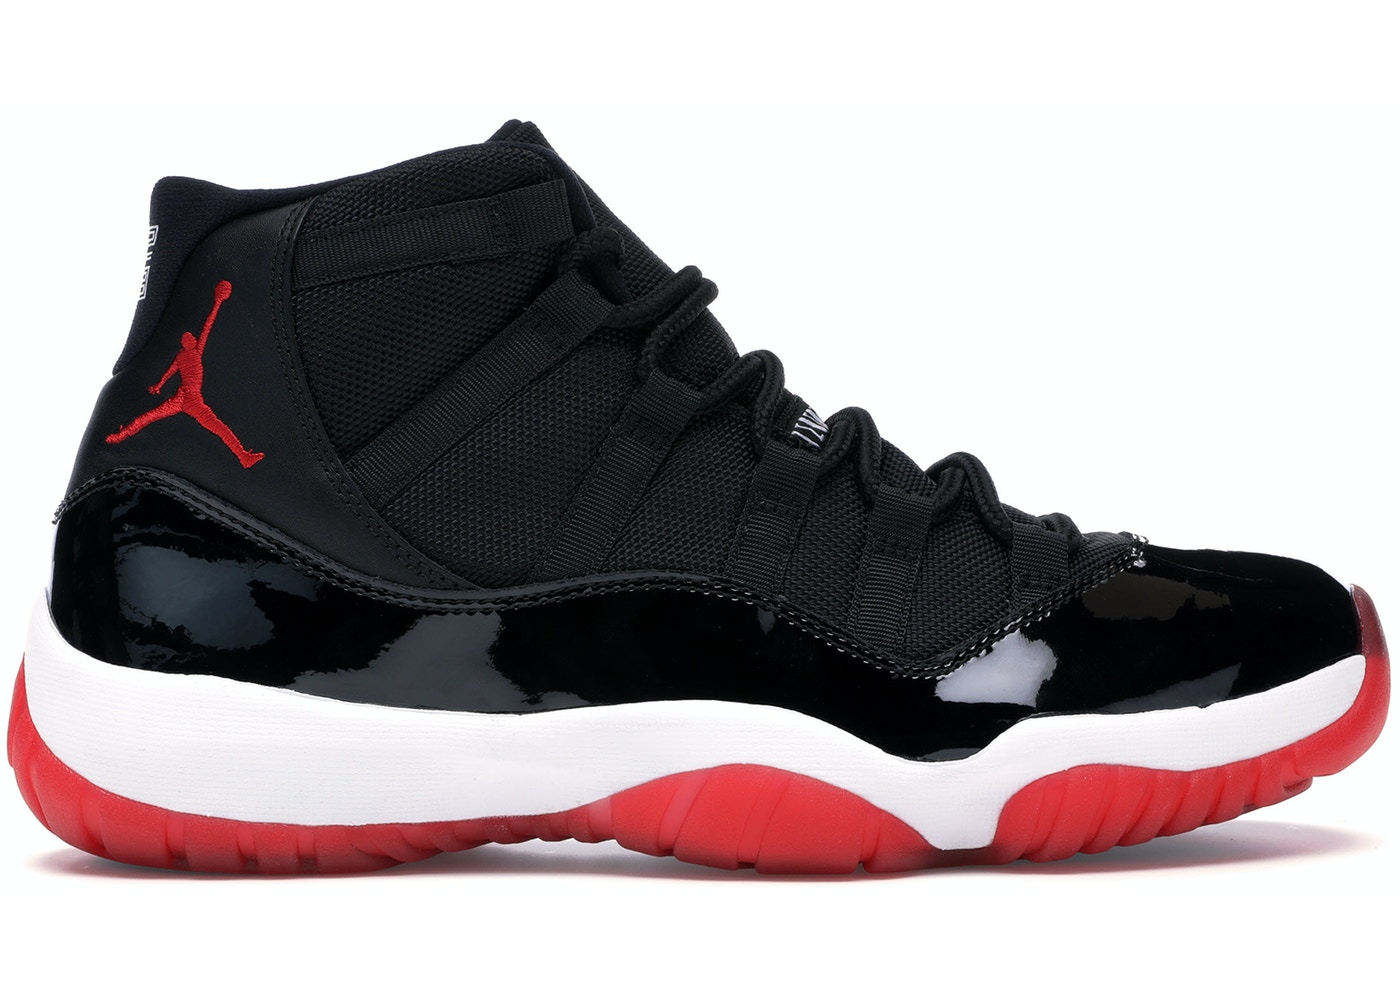 ae72d1d3578a Buy Air Jordan 11 Shoes   Deadstock Sneakers